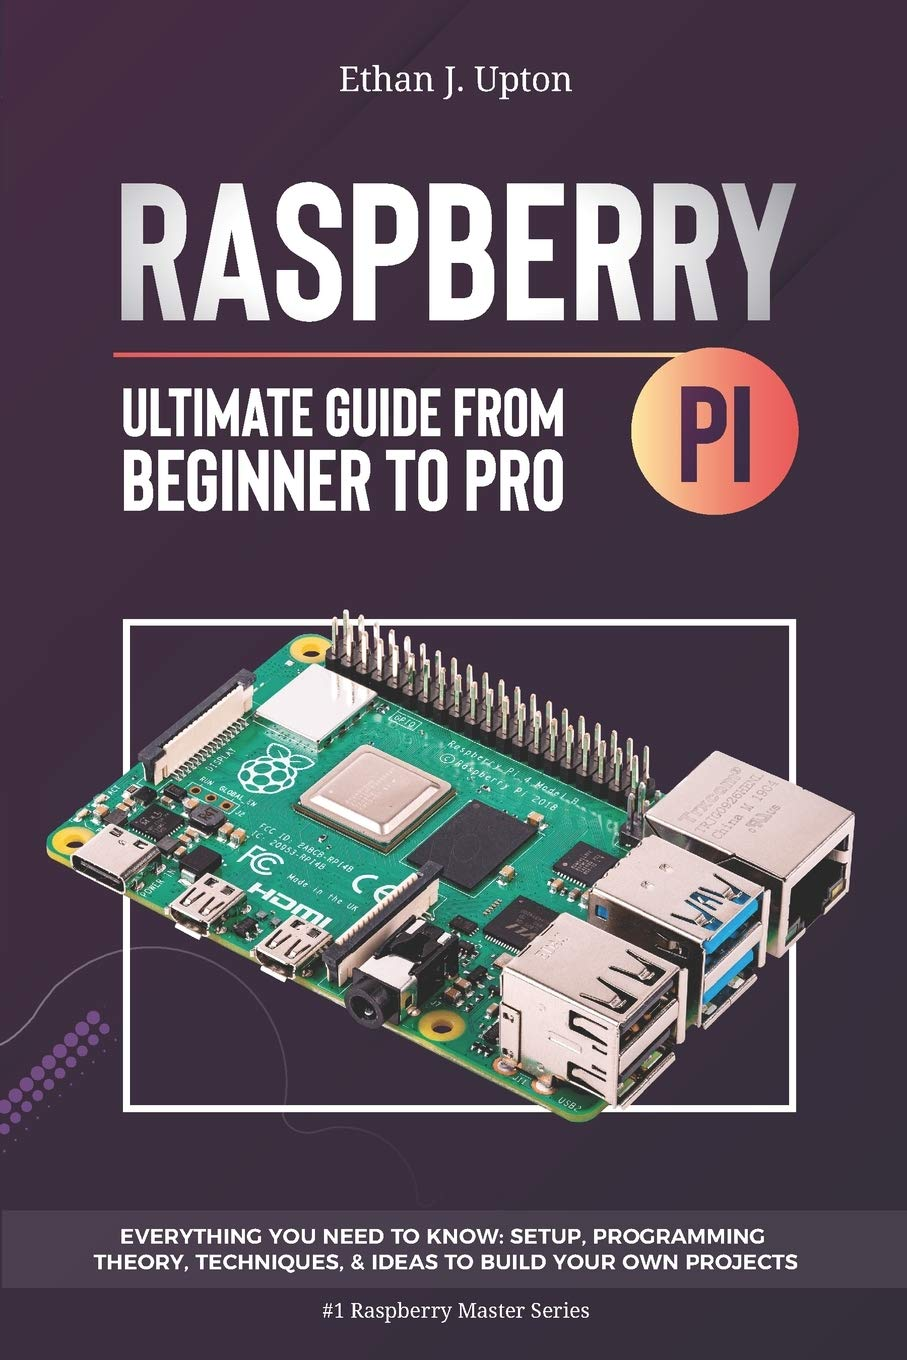 Raspberry Pi 4 Ultimate Guide  From Beginner To Pro  Everything You Need To Know  Setup Programming Theory Techniques And Awesome Ideas To Build Your Own Projects  Raspberry Master Series Band 1